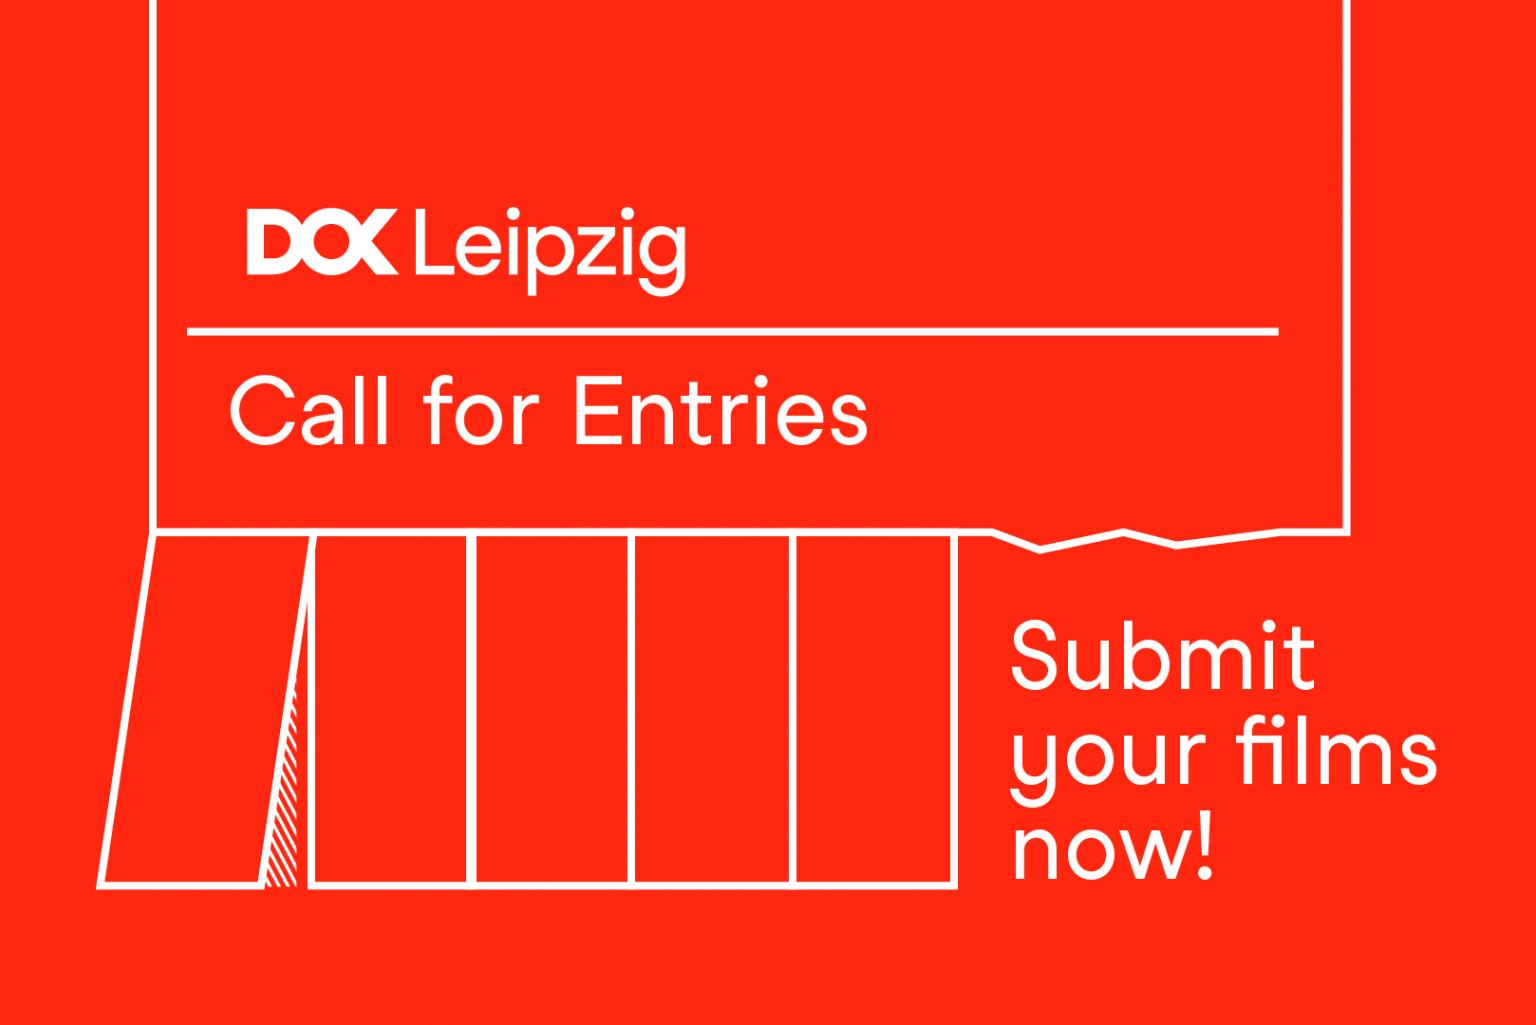 Illustration eines Abreißzettels, weiße Konturen auf rot. Oben das DOK Leipzig Logo, darunter der Text: Call for Entries. Submit your films now!